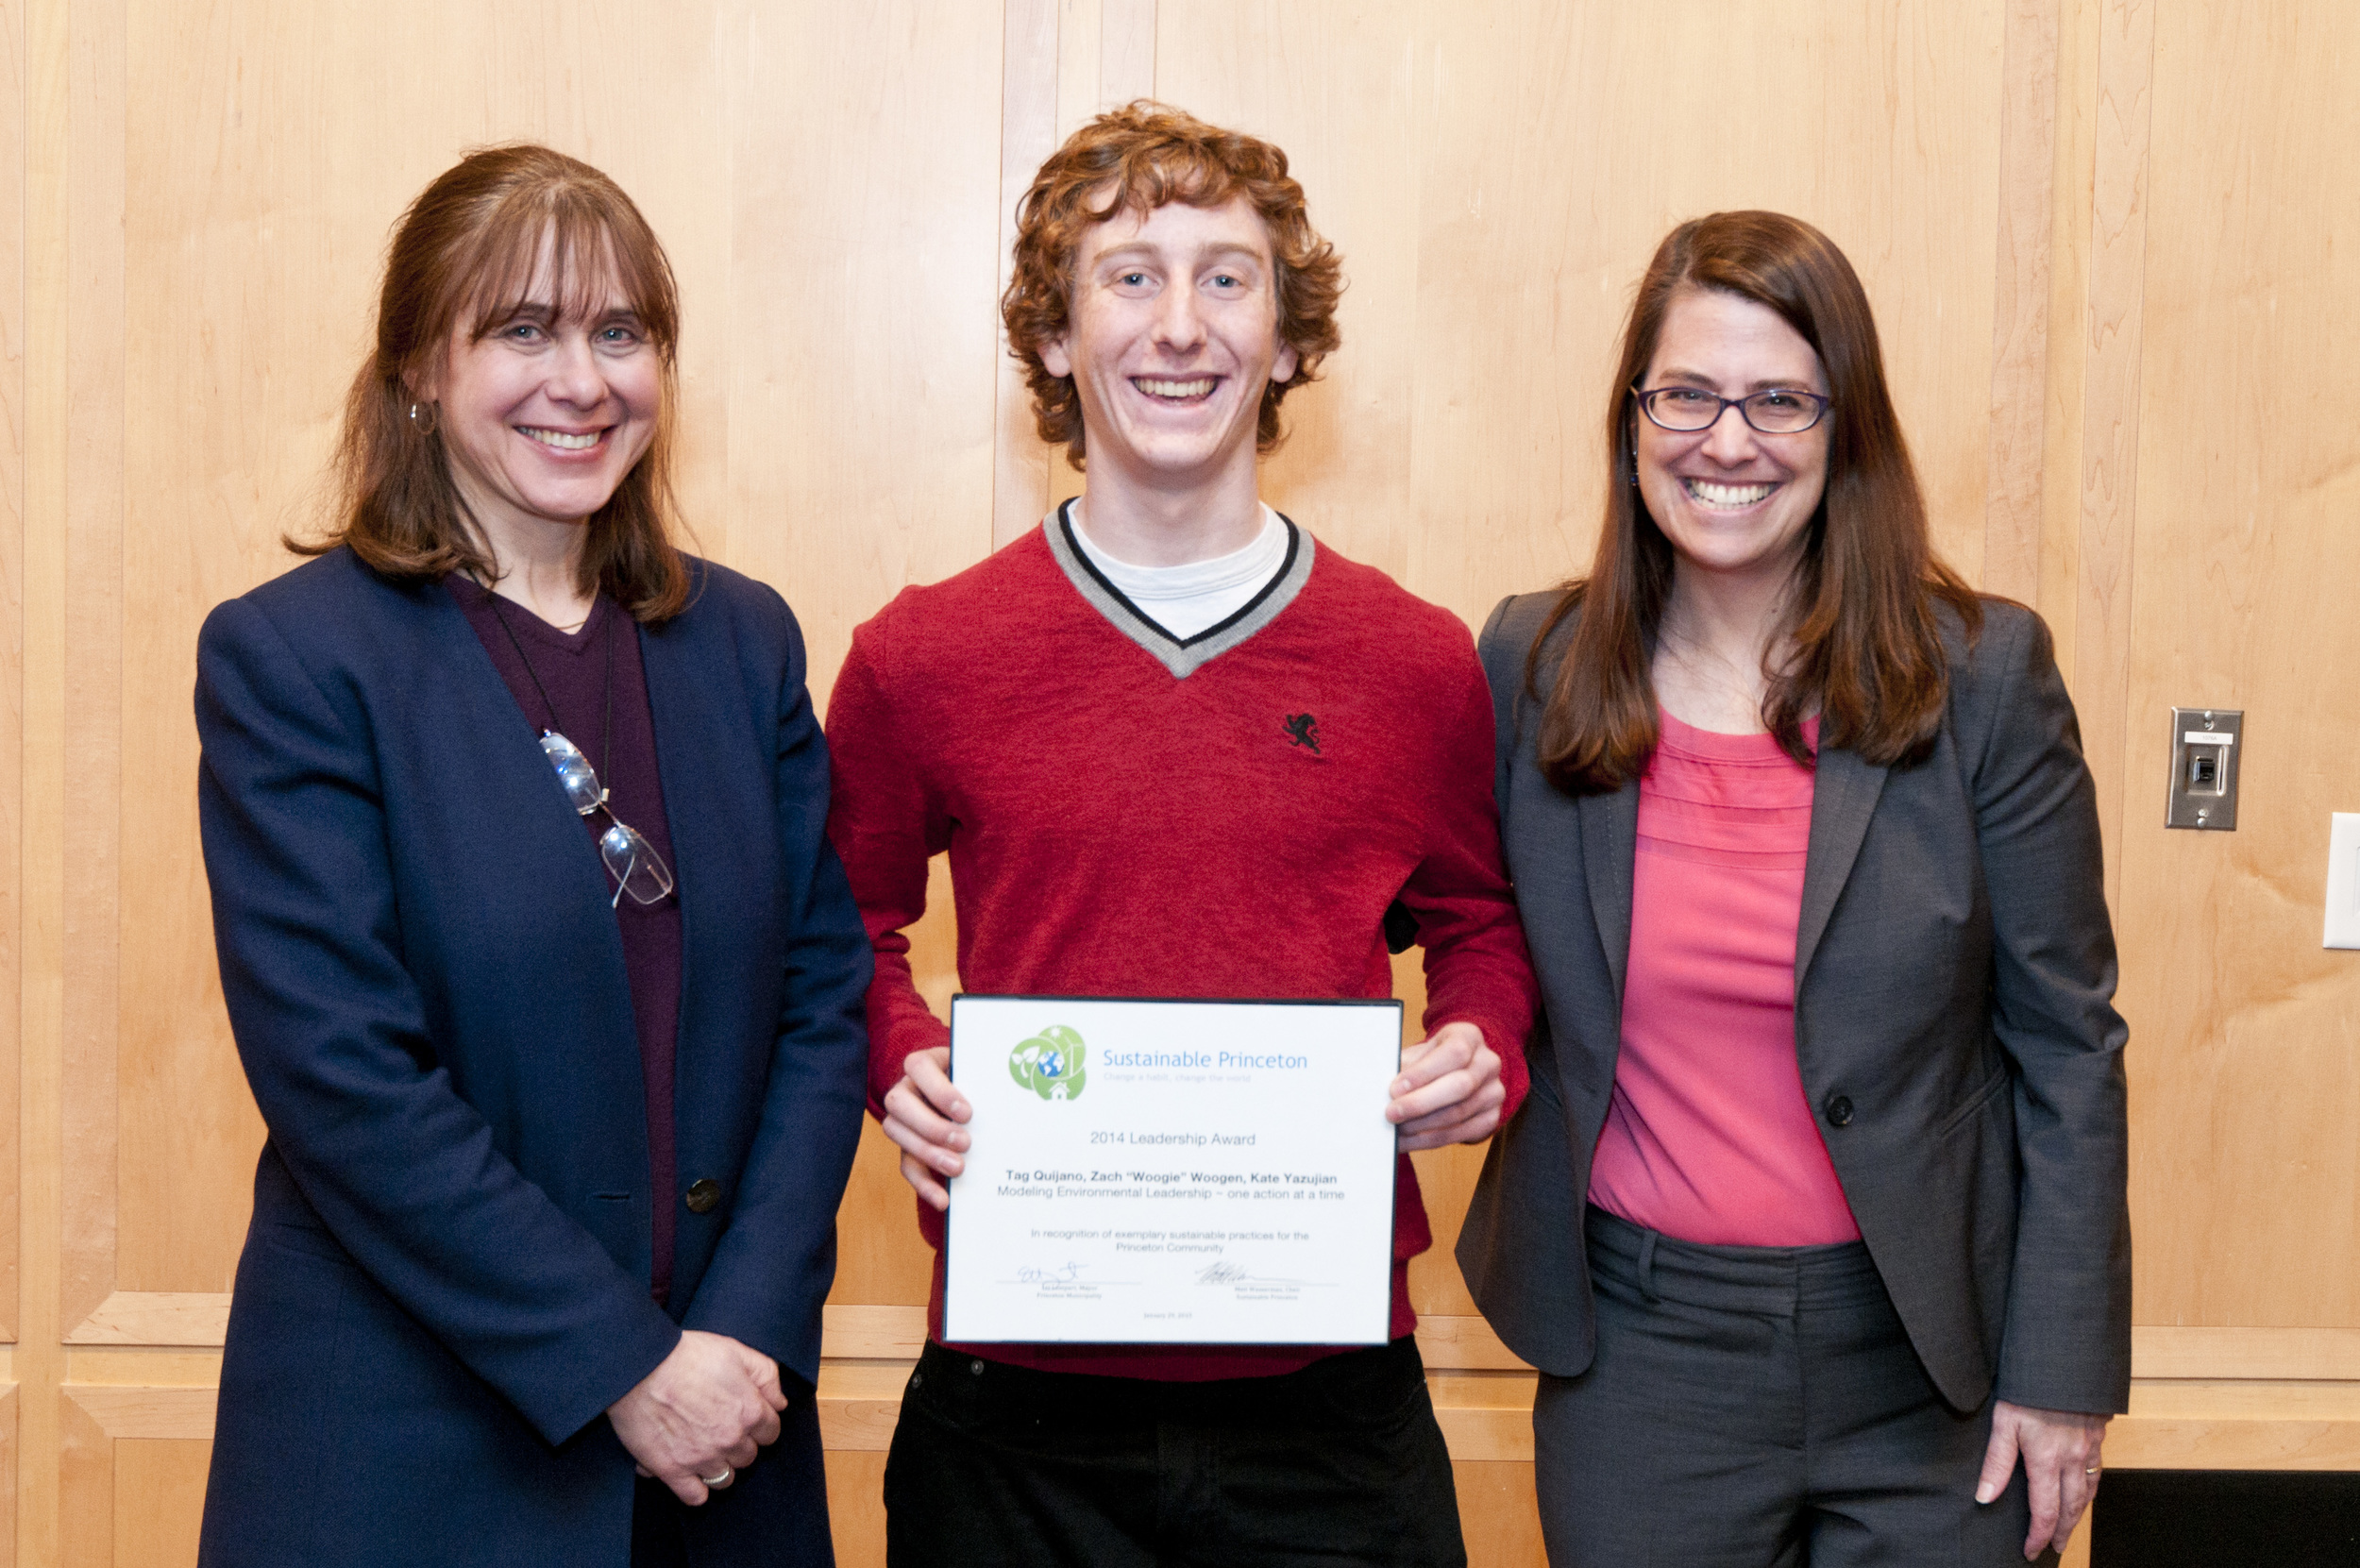 "Zach ""Woogie"" Woogen (center) accepting award on behalf of himself, Kate Yazujian and Tag Quijano (not pictured) with Sustainable Princeton Vice-Chair, Heidi Fichtenbaum (left) and Mayor Liz Lempert (right). Photo by Cyndi Shattuck."